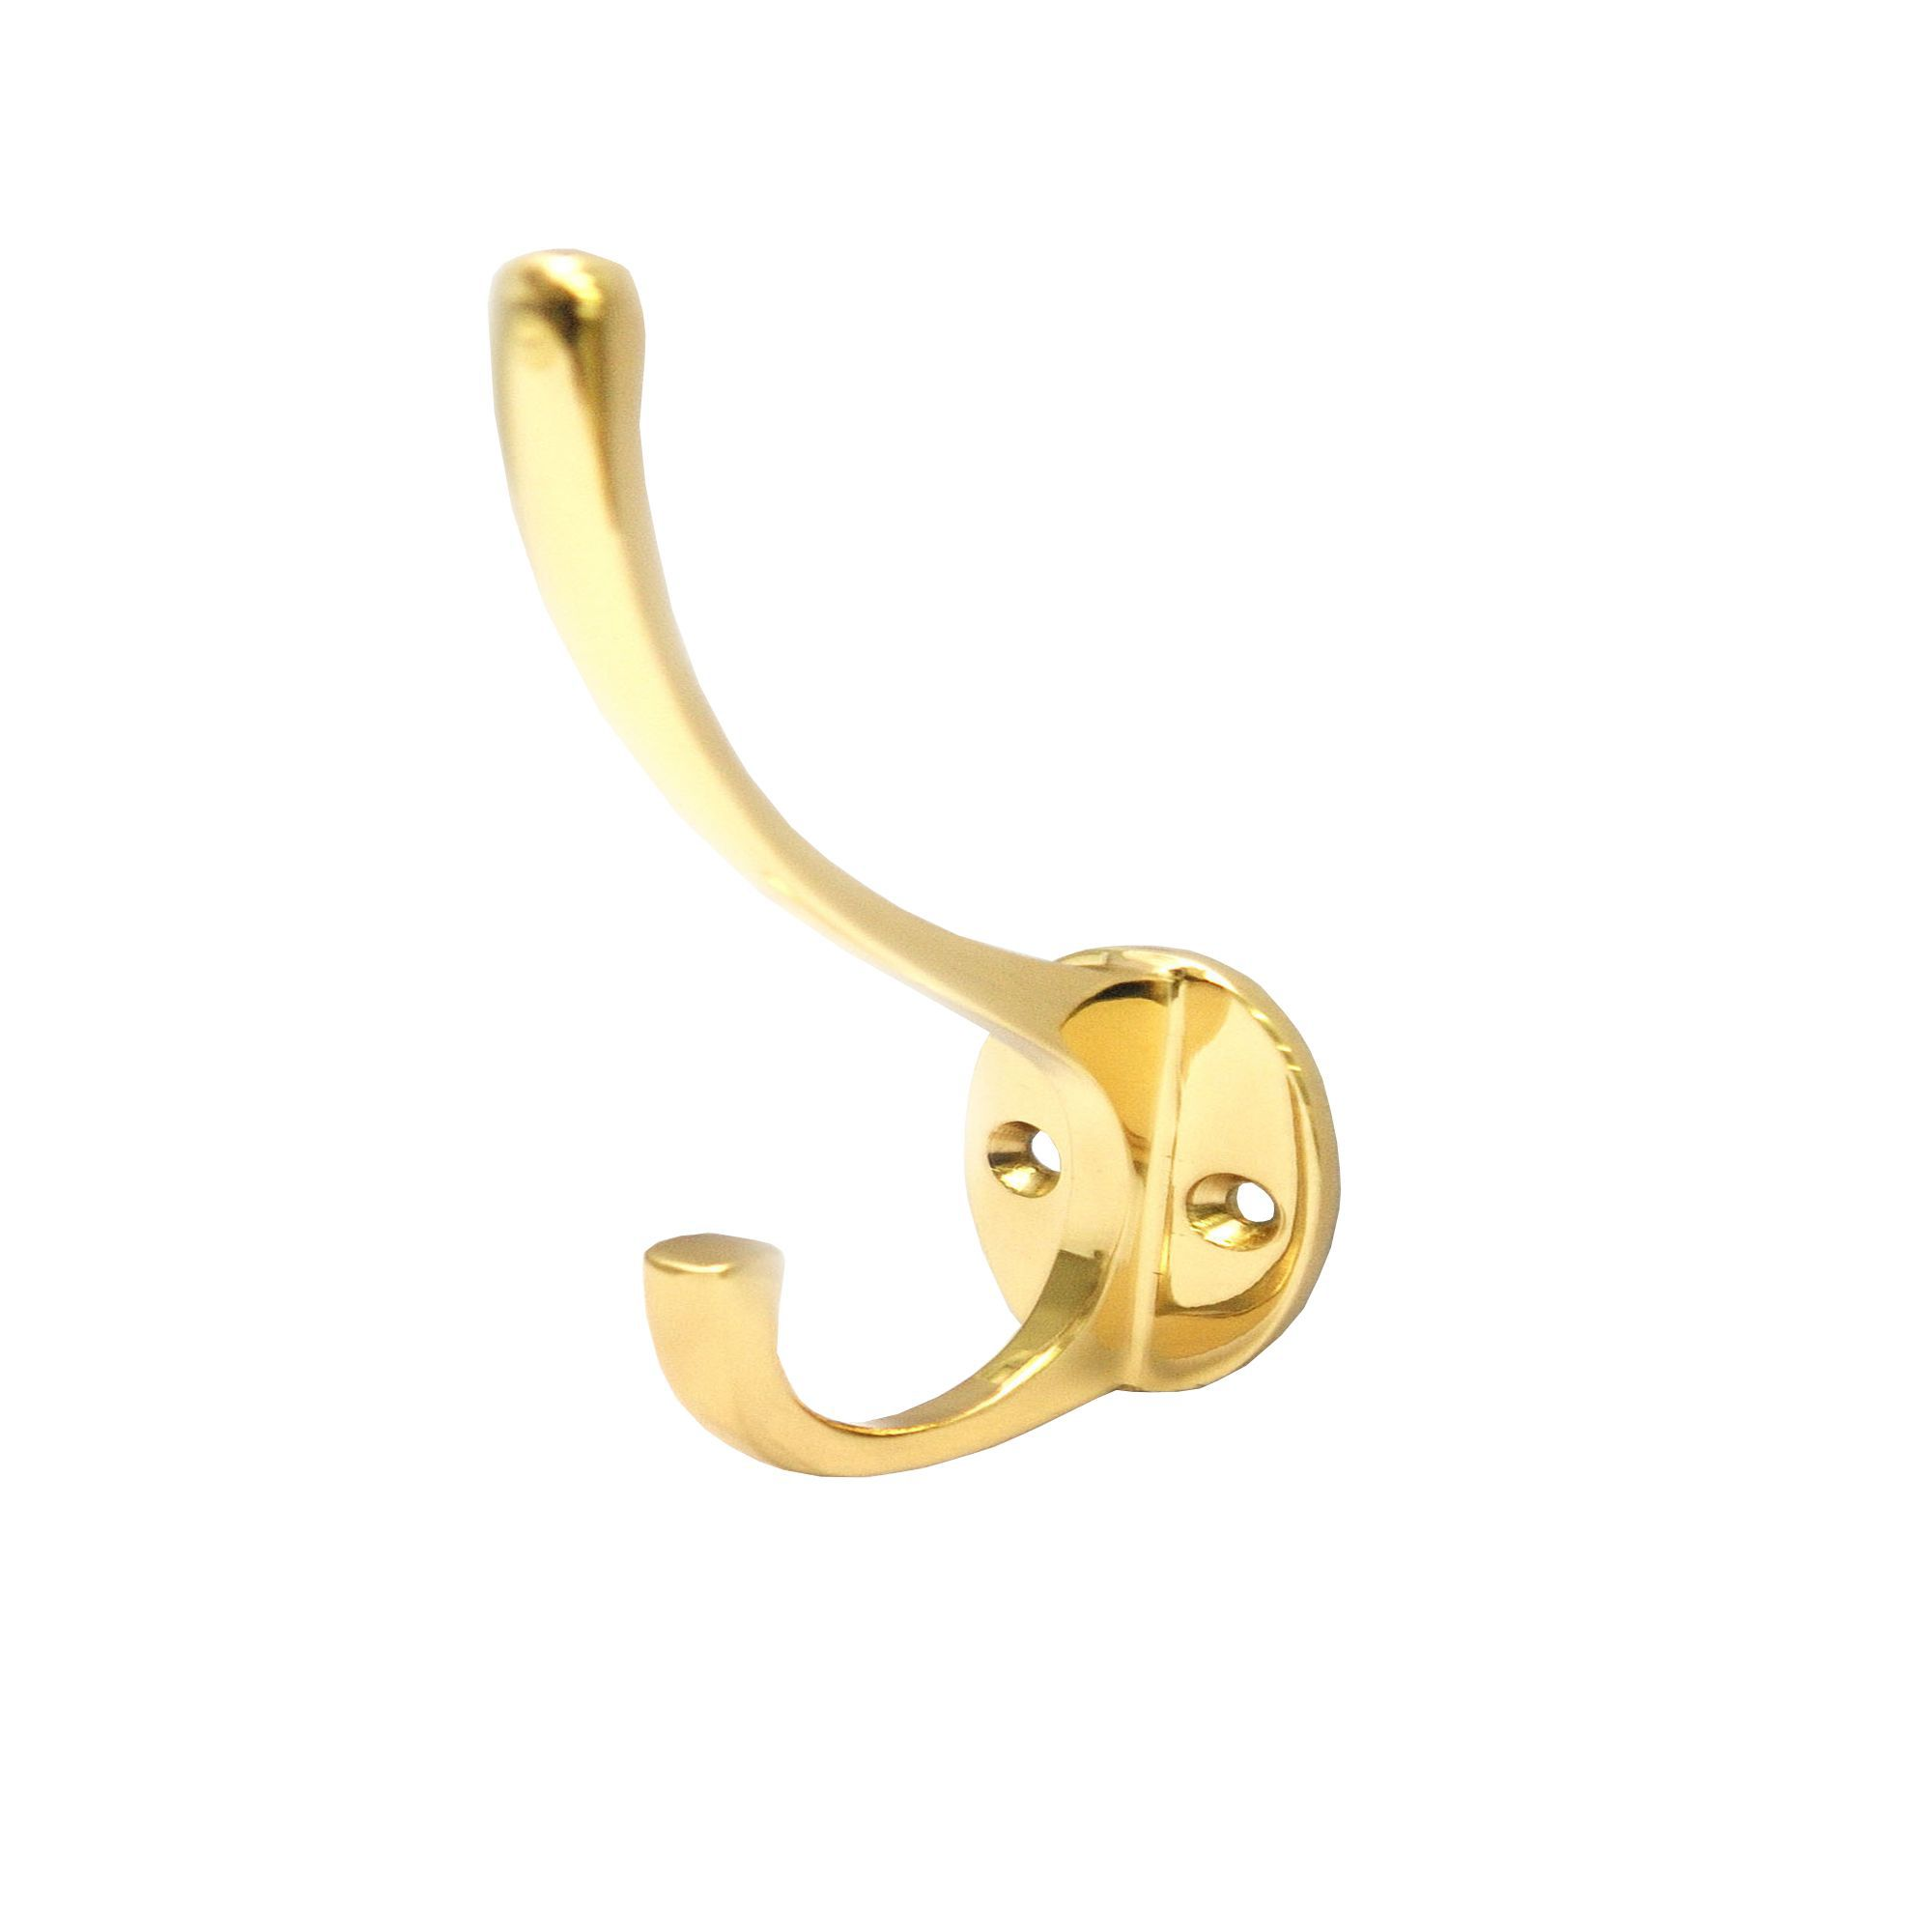 B&q Gold Brass Hat & Coat Hook